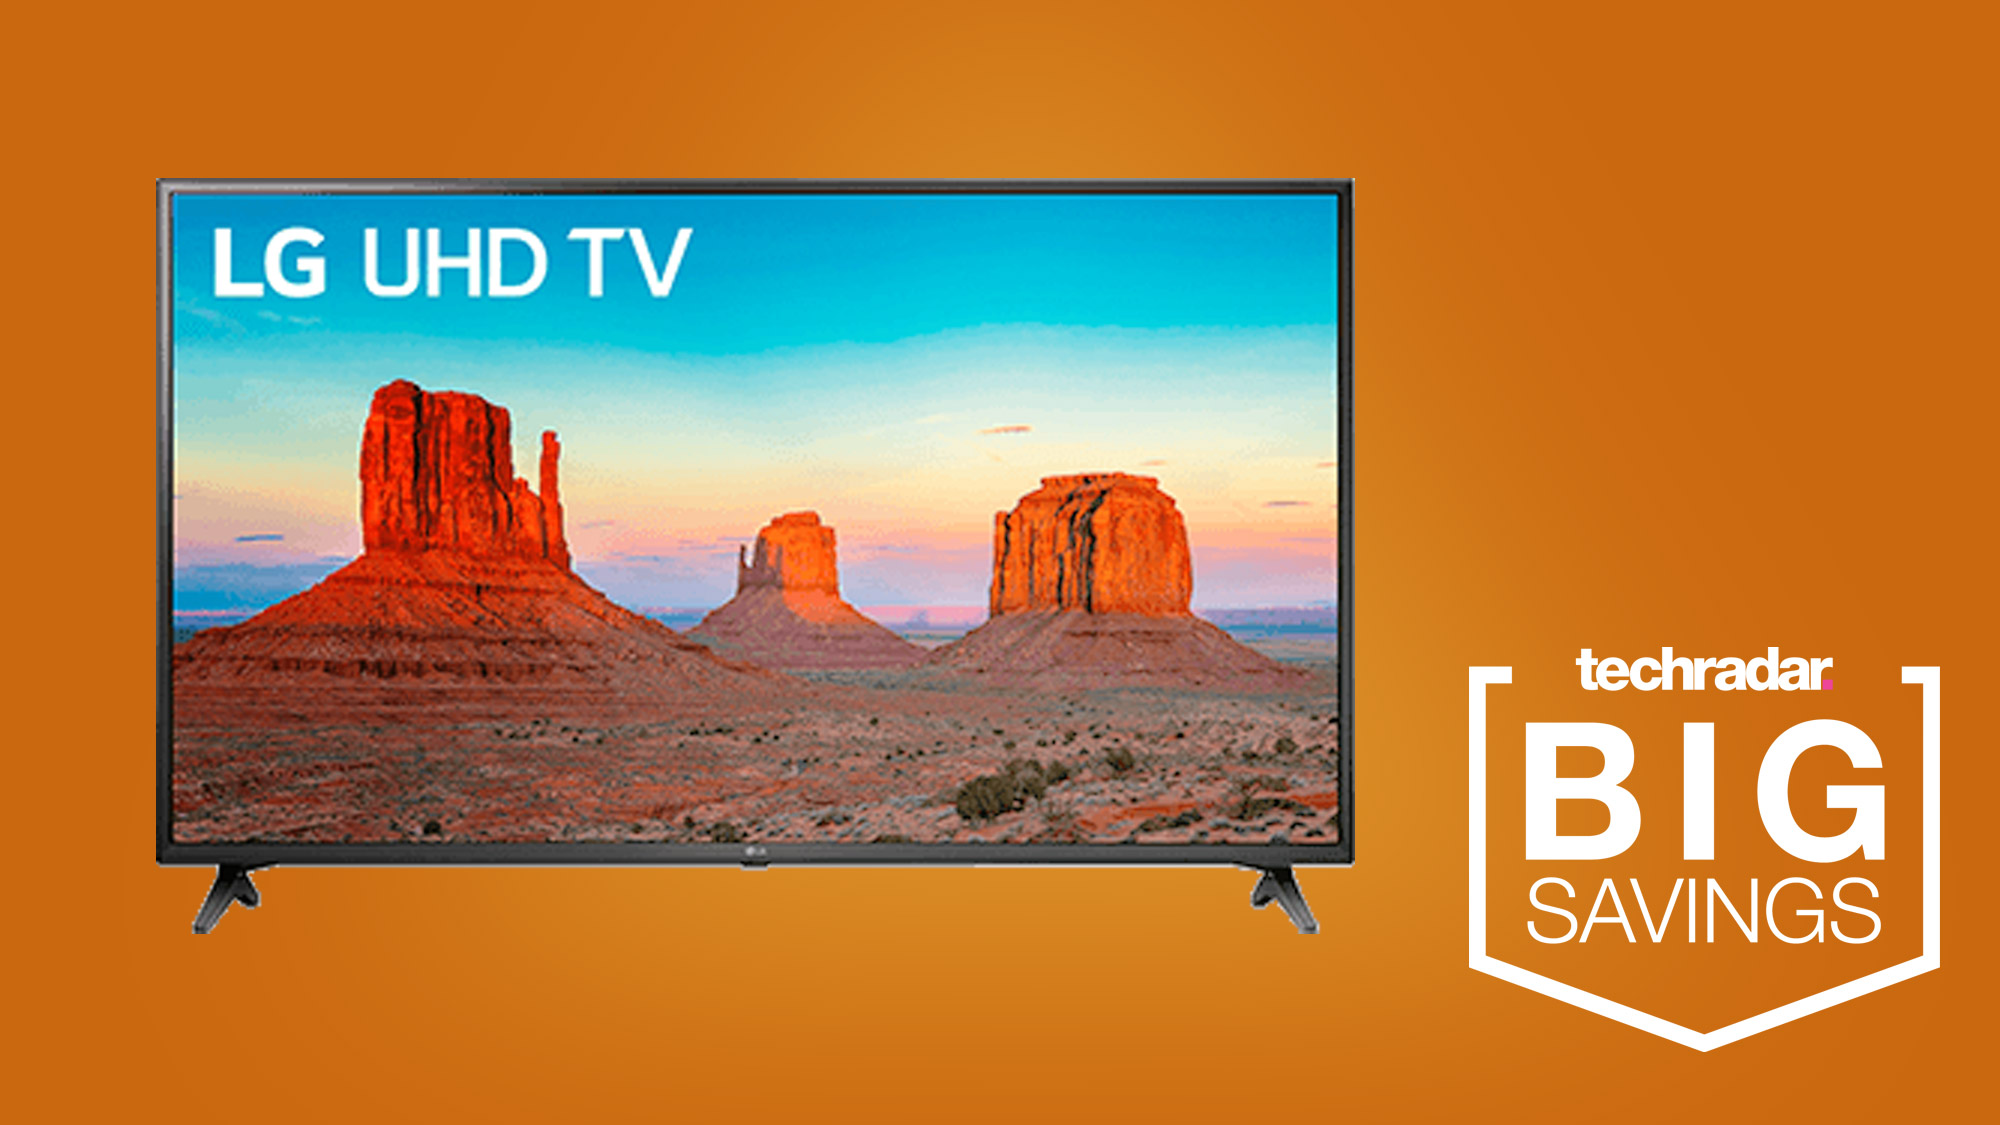 After-Christmas TV sale at Walmart: year-end deals from Samsung, LG, & more